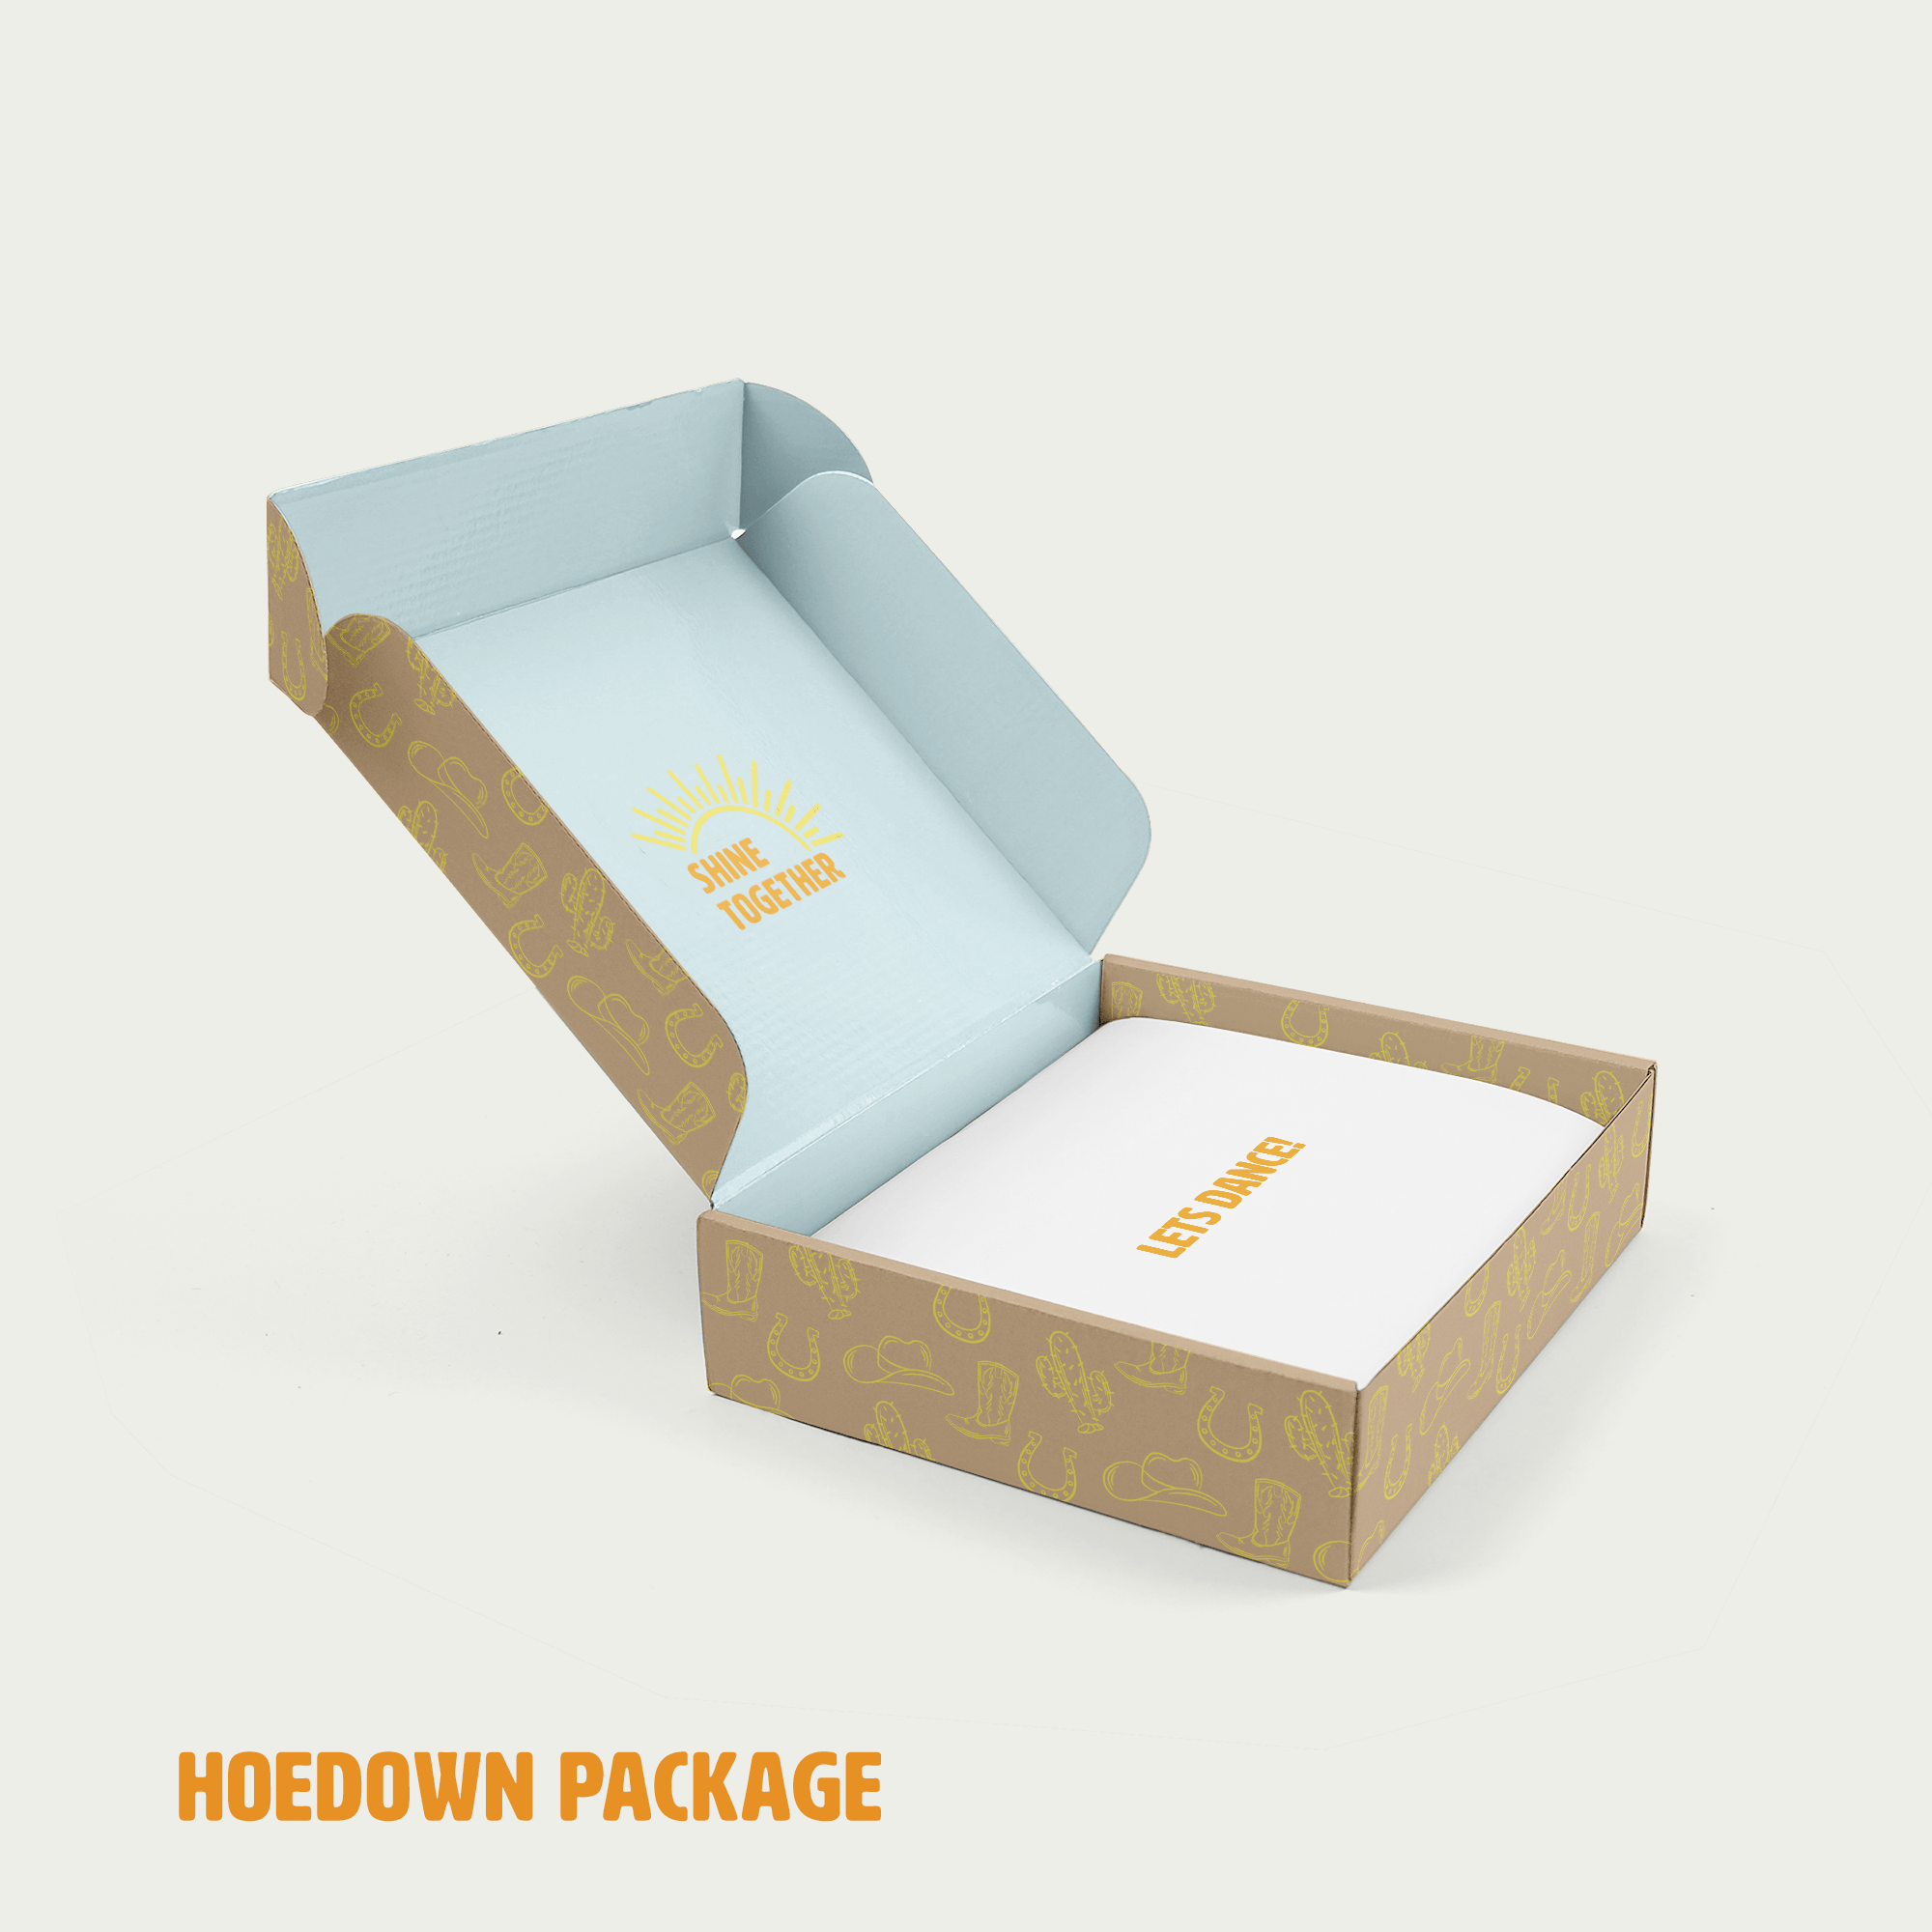 hoedown box with words